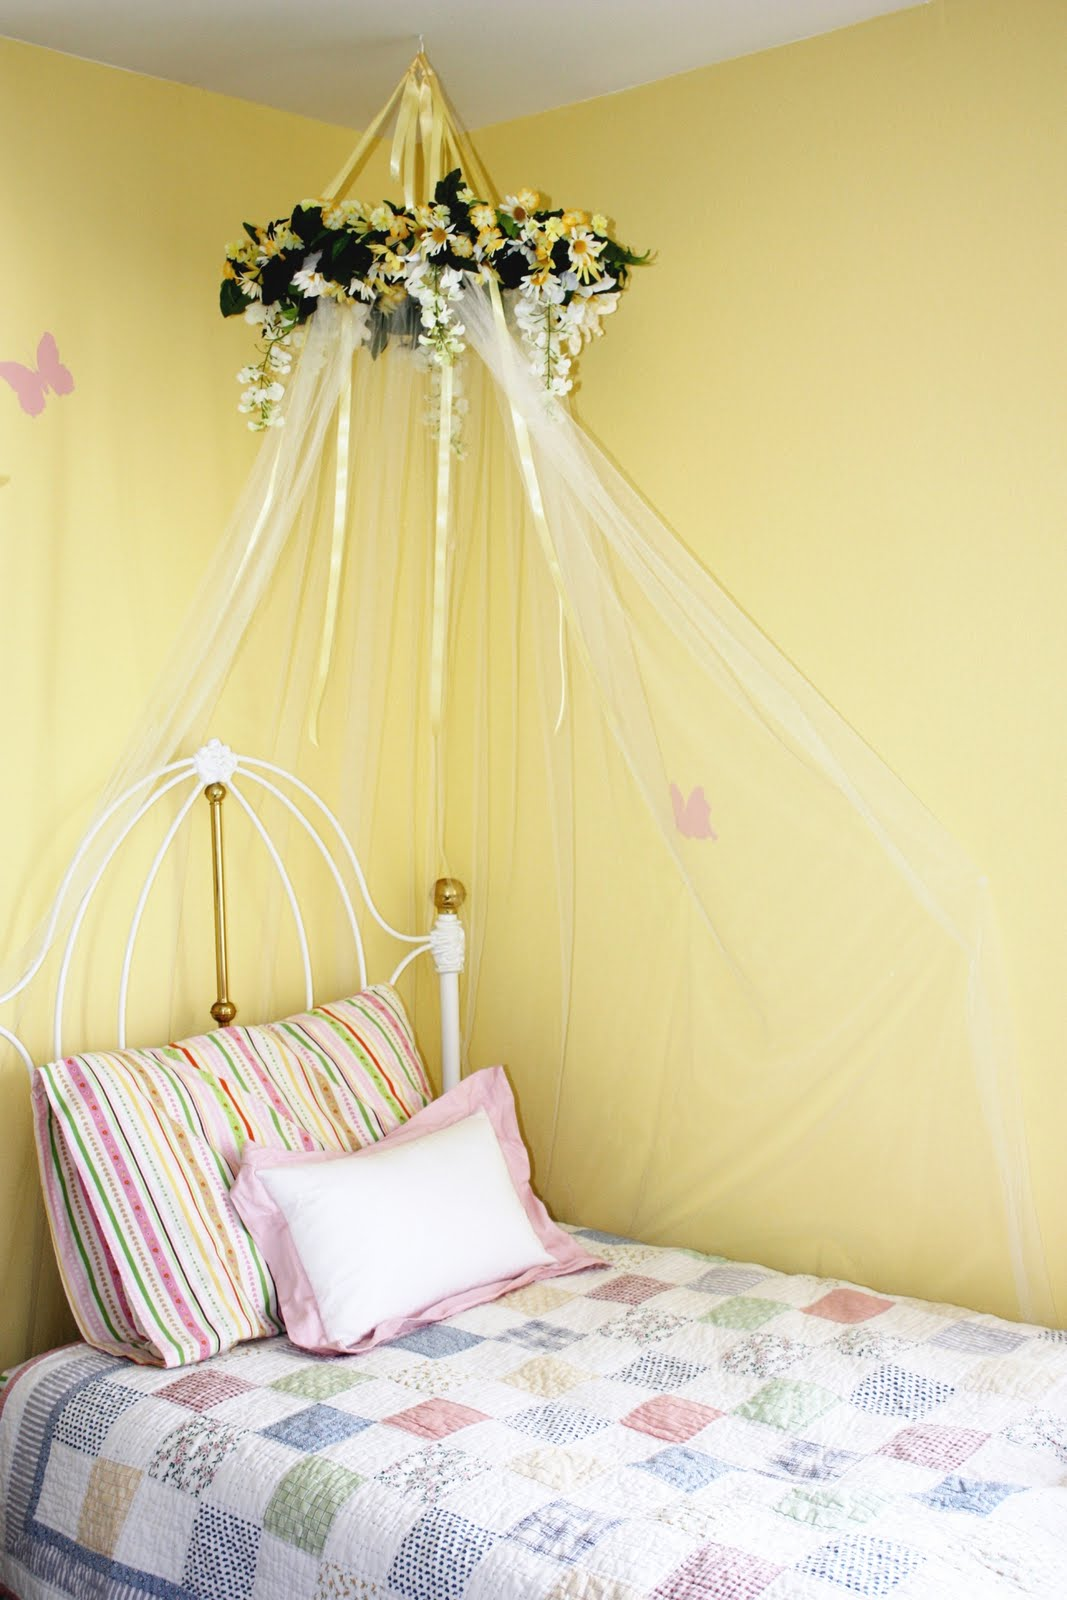 DIY bed canopy for little girls room & Everyday Art: DIY bed canopy for little girls room